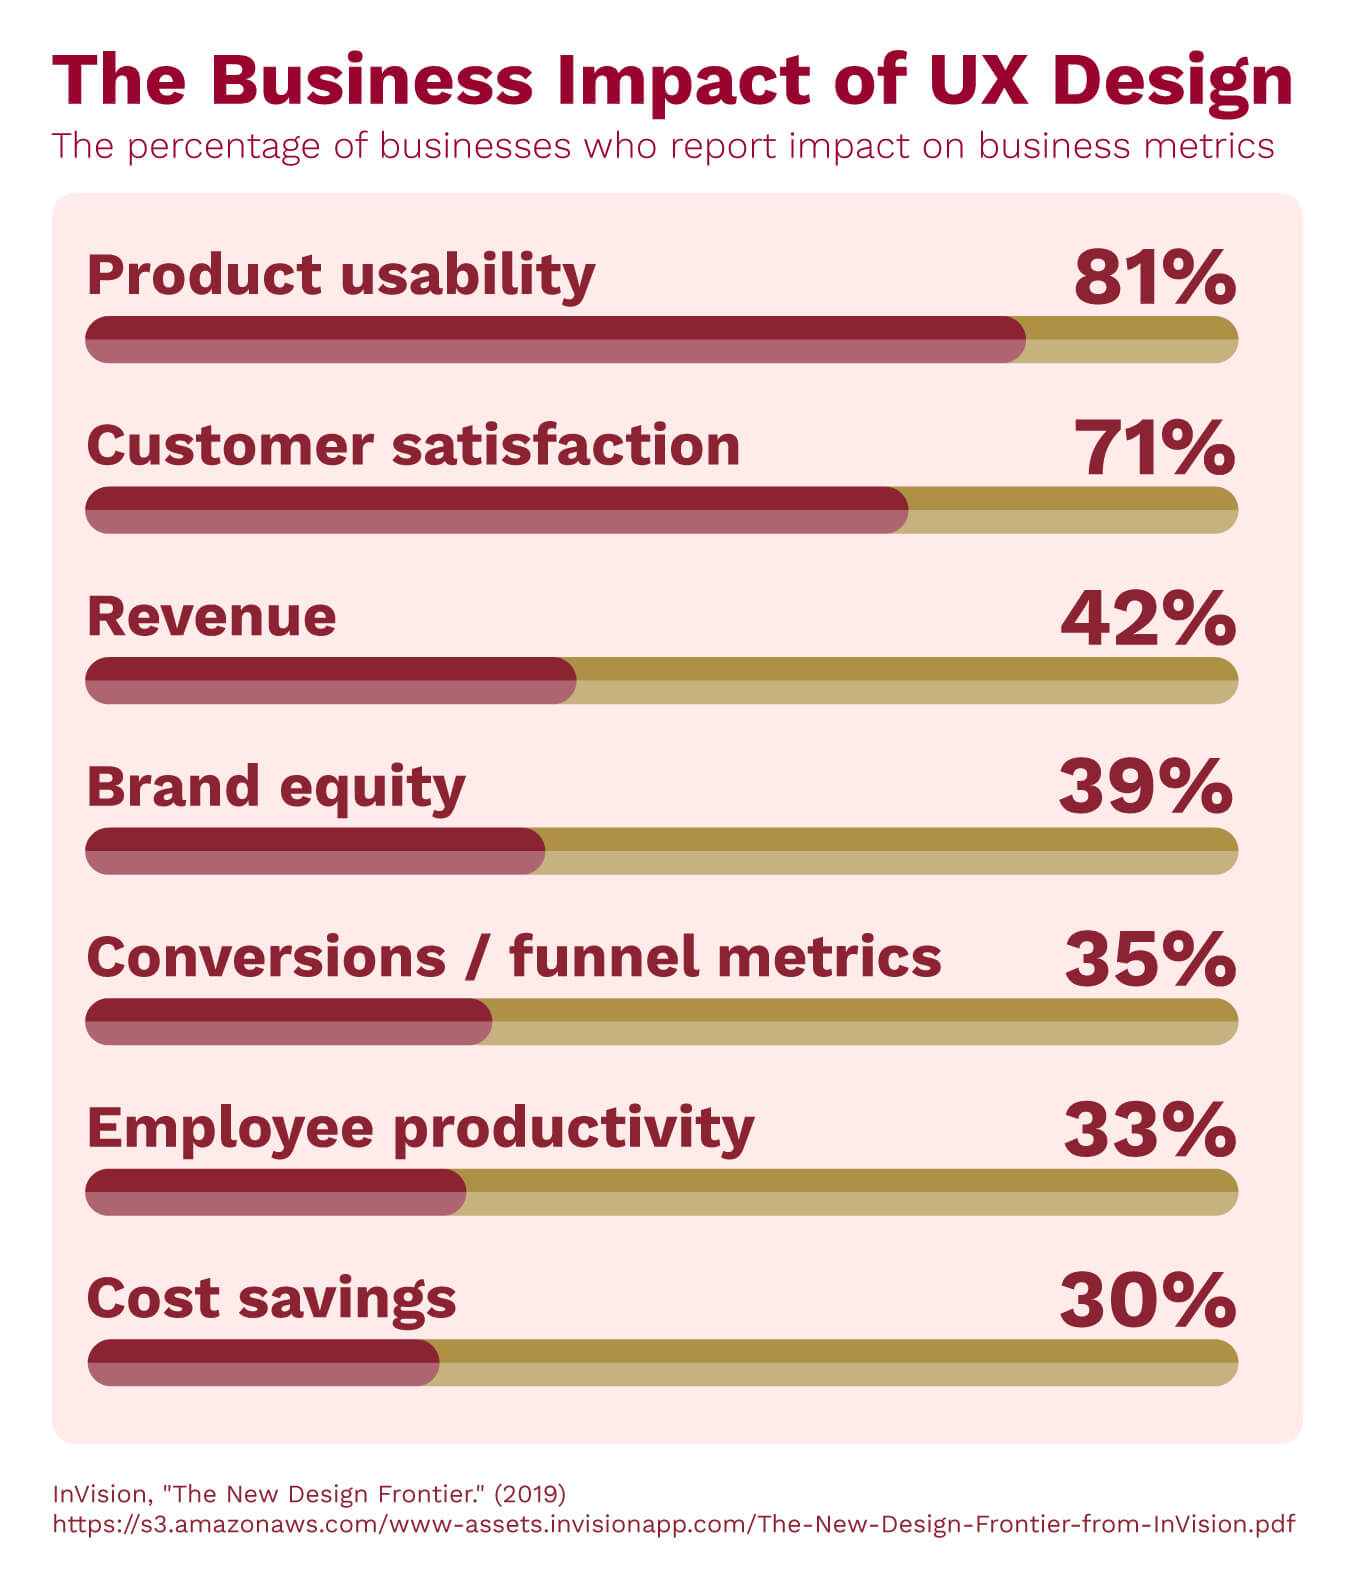 The percentage of businesses who report impact on business metrics